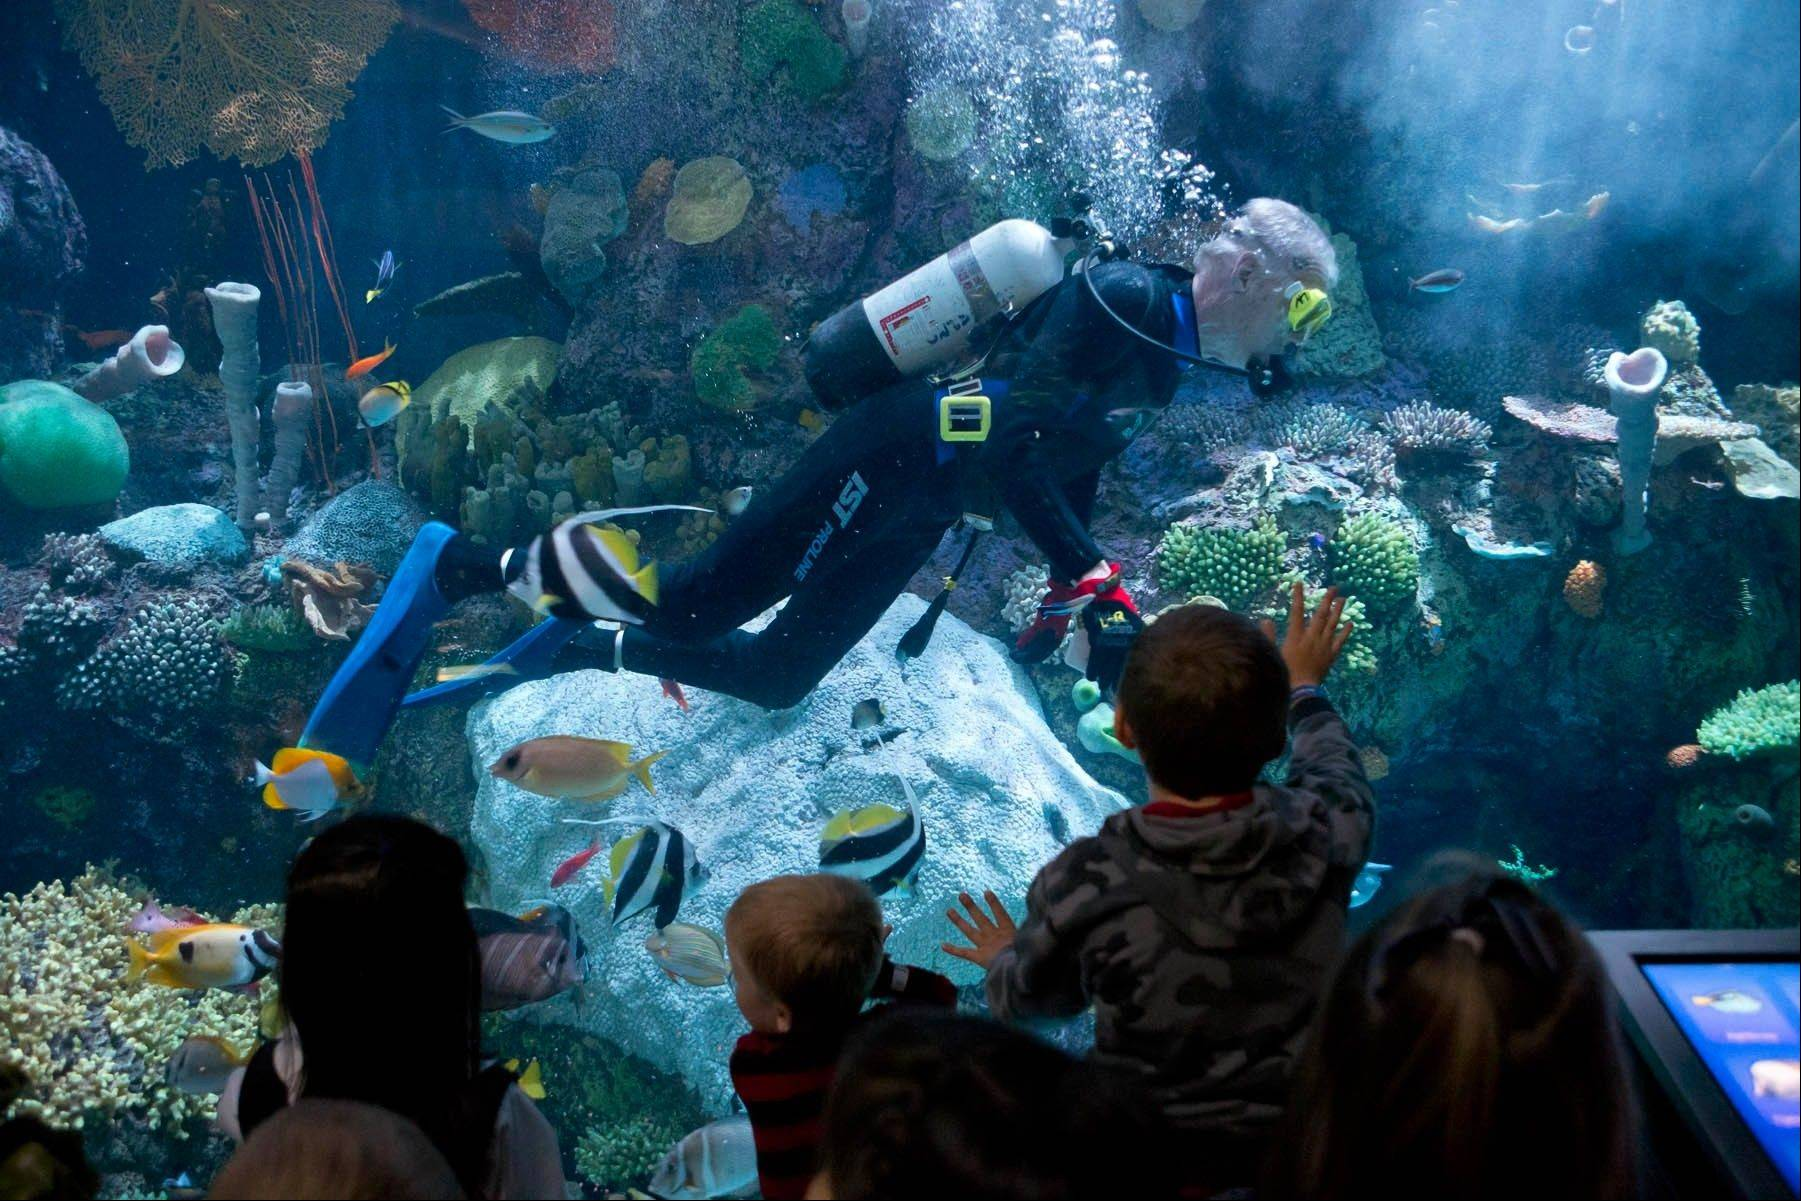 Lou Nesslar dives at the Wild Reef exhibit, where he feeds the fish, checks for diseases, and does repair work and cleaning in the tanks.